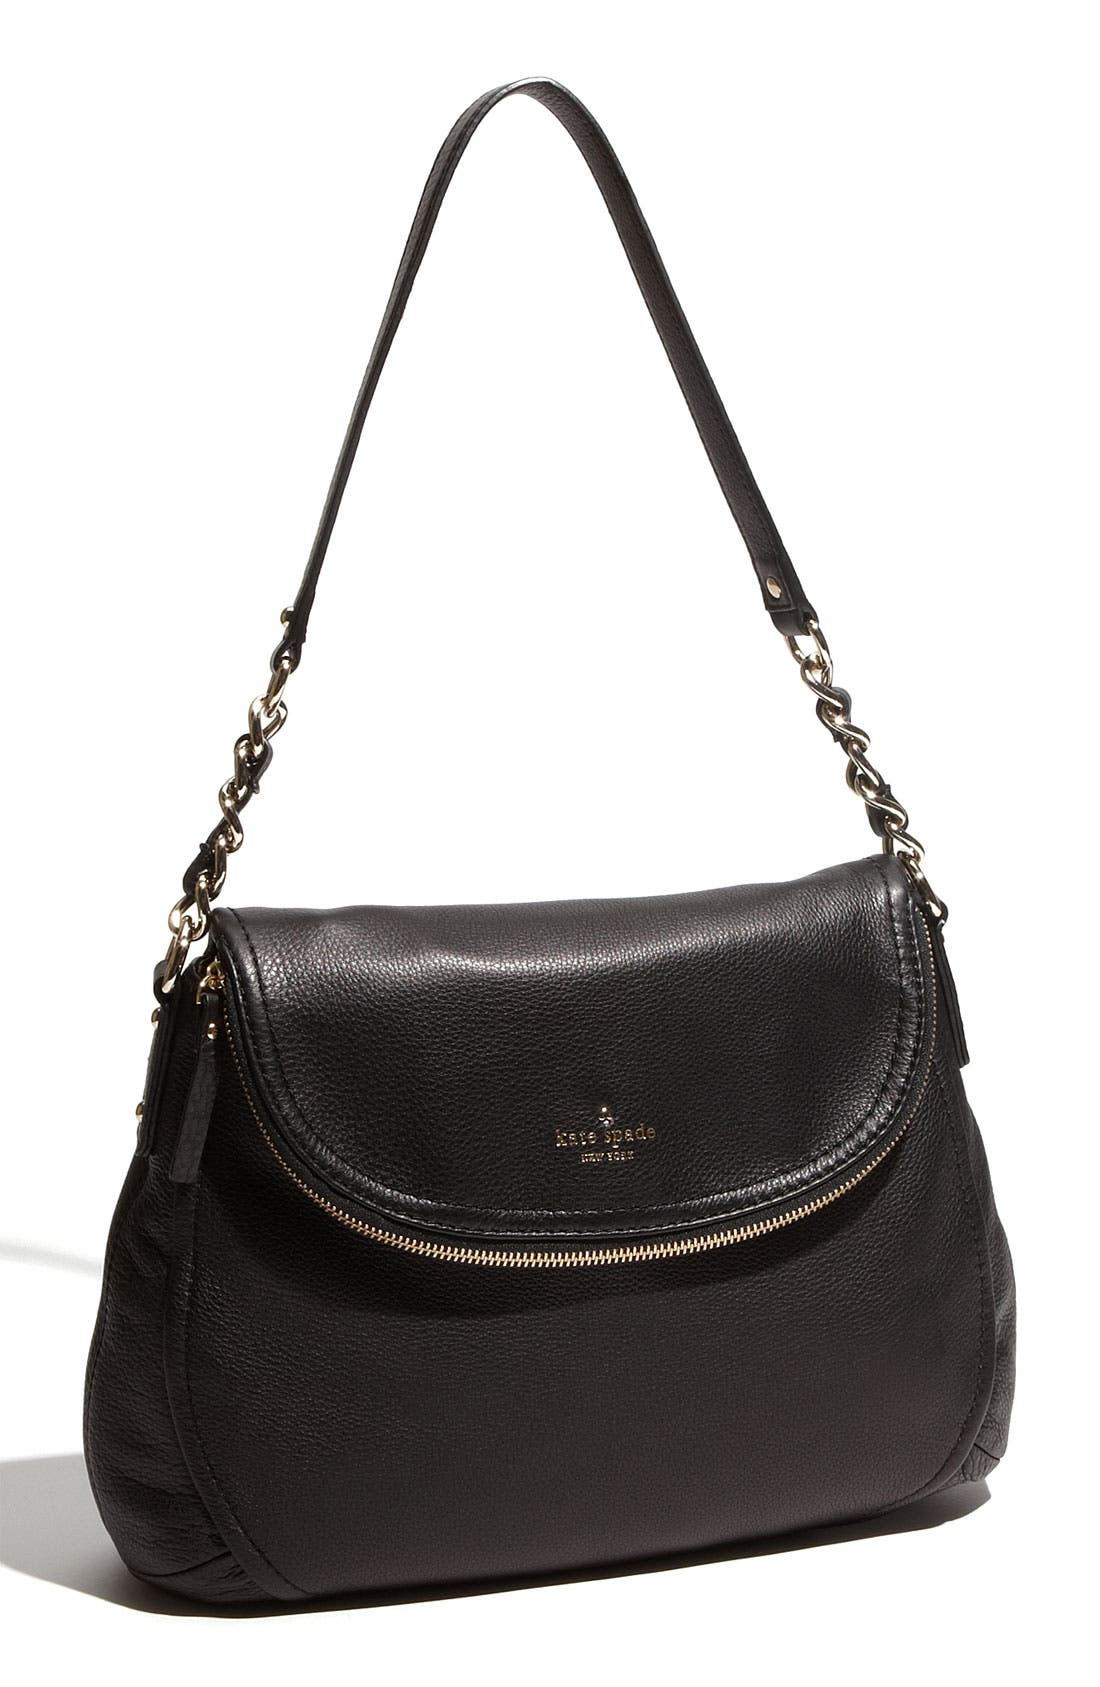 Main Image - kate spade new york 'cobble hill - penny' shoulder bag